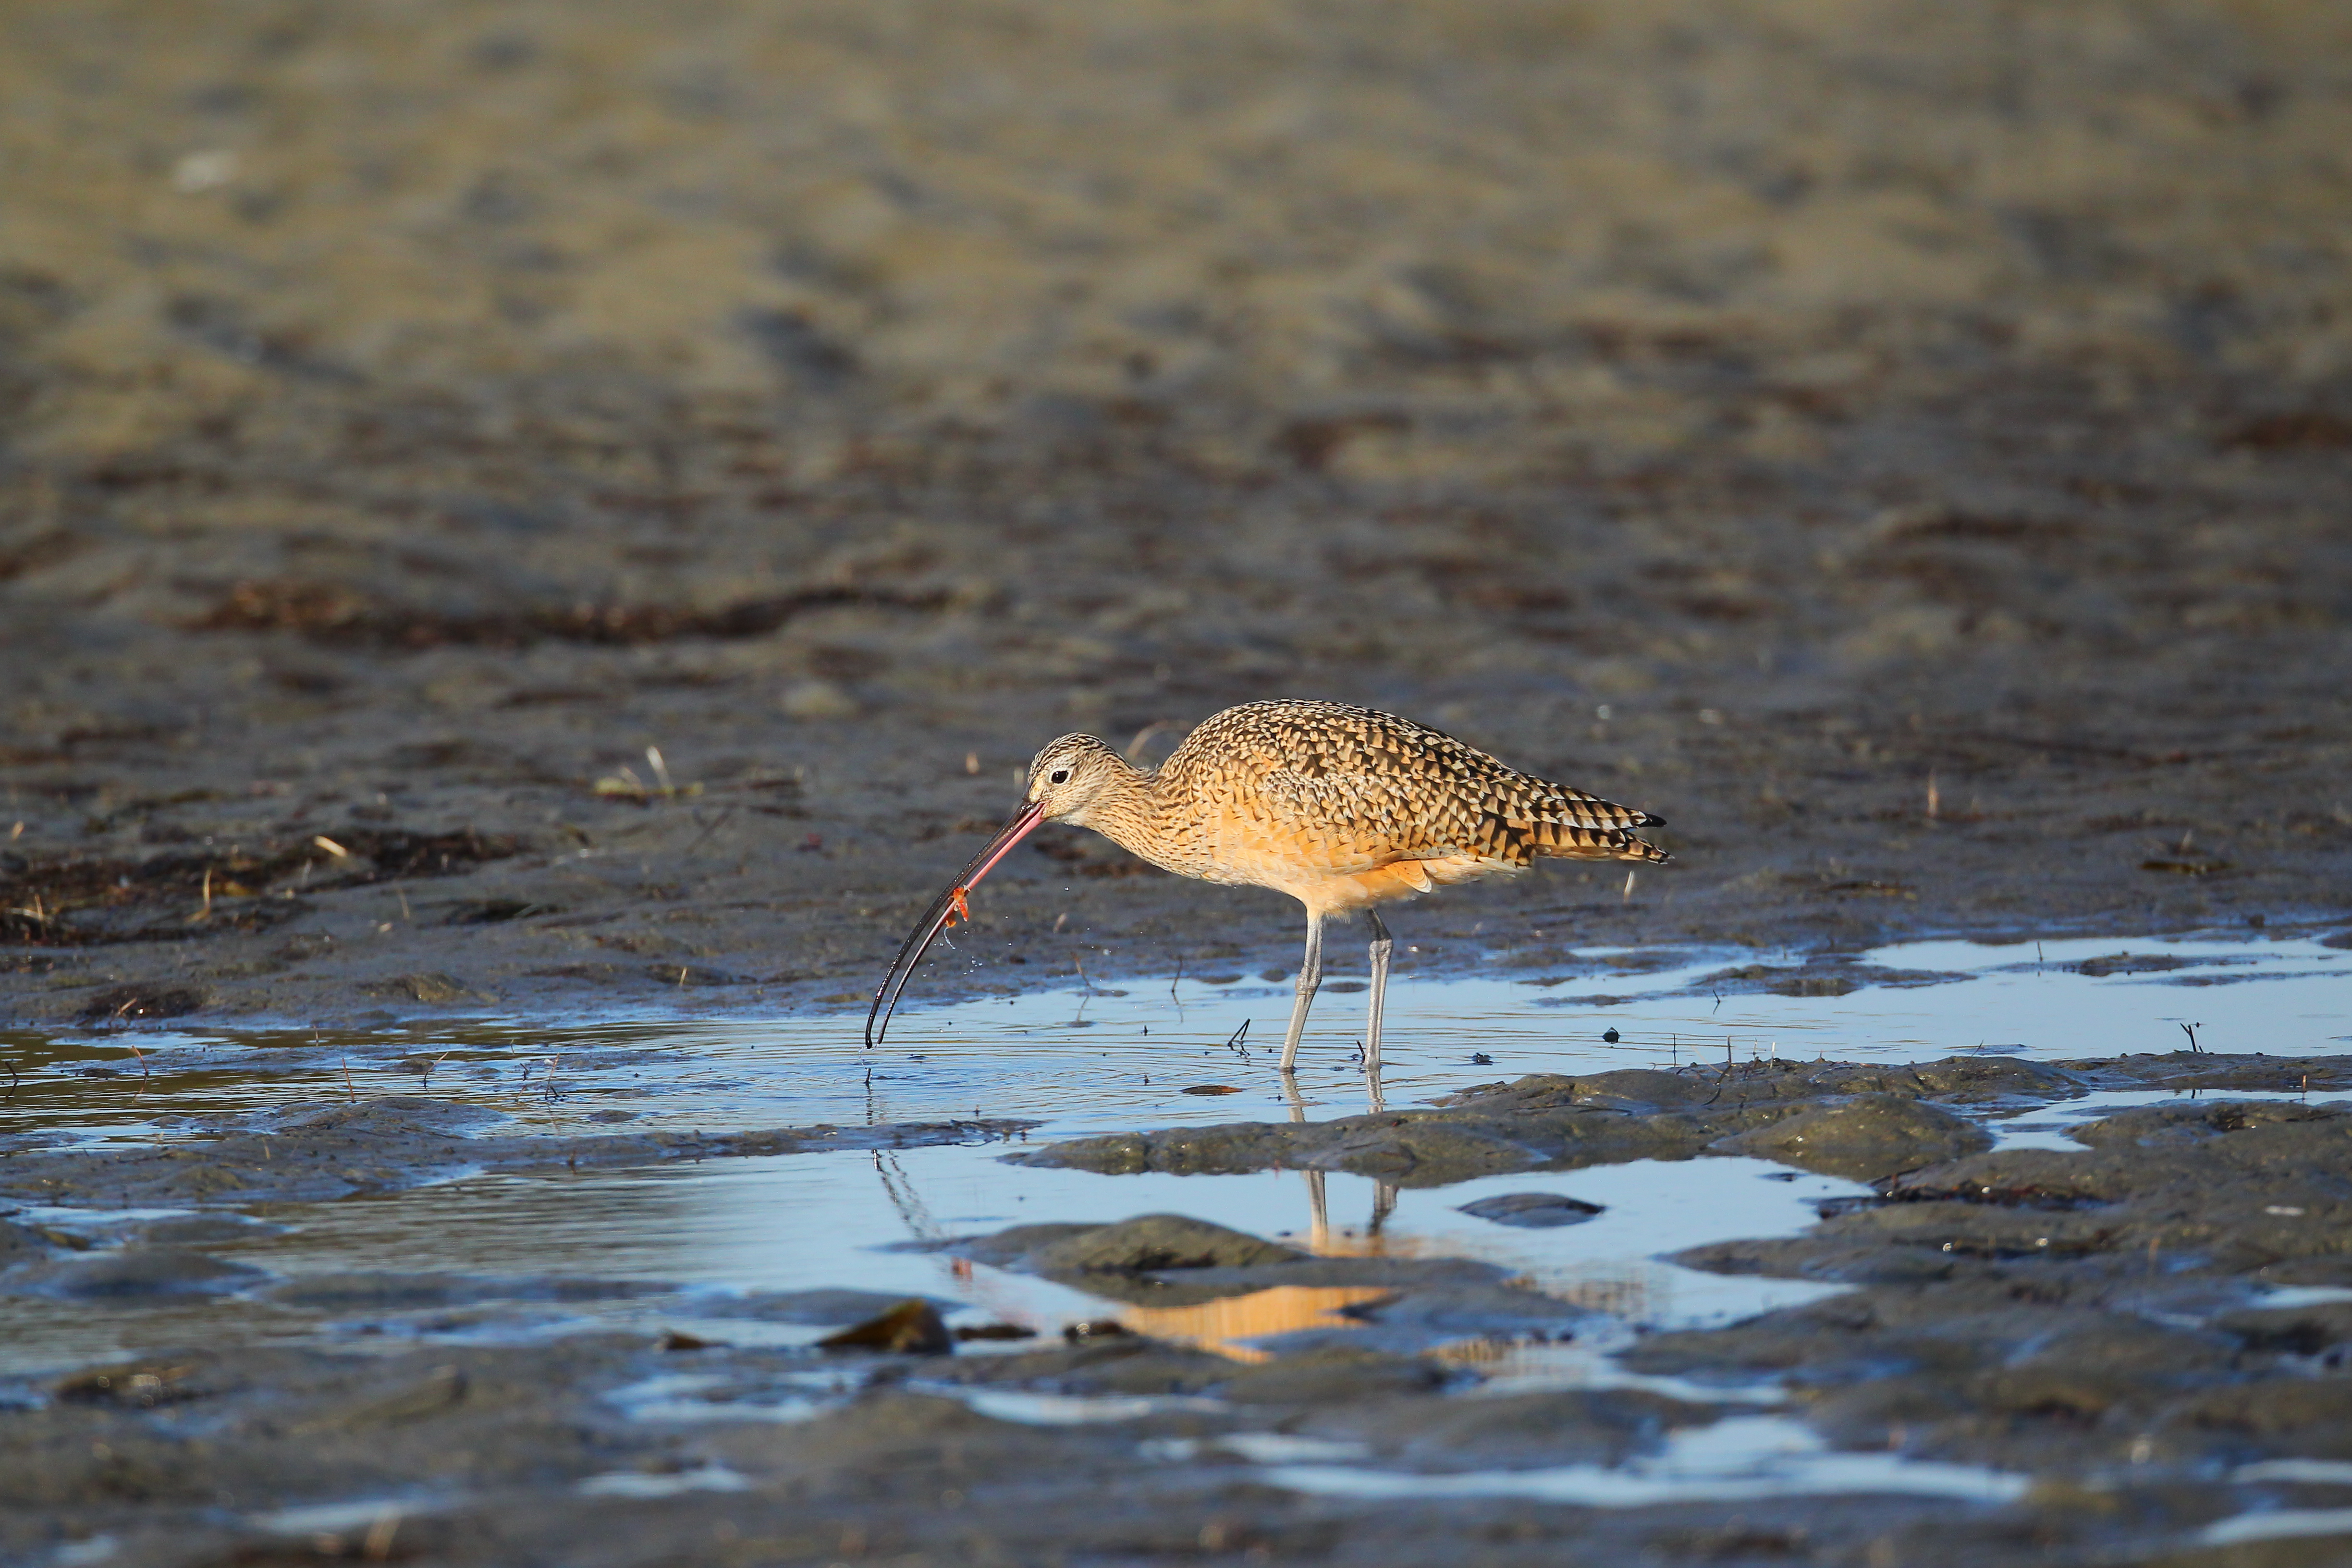 long-billed_curlew2_AlexHouston.jpg